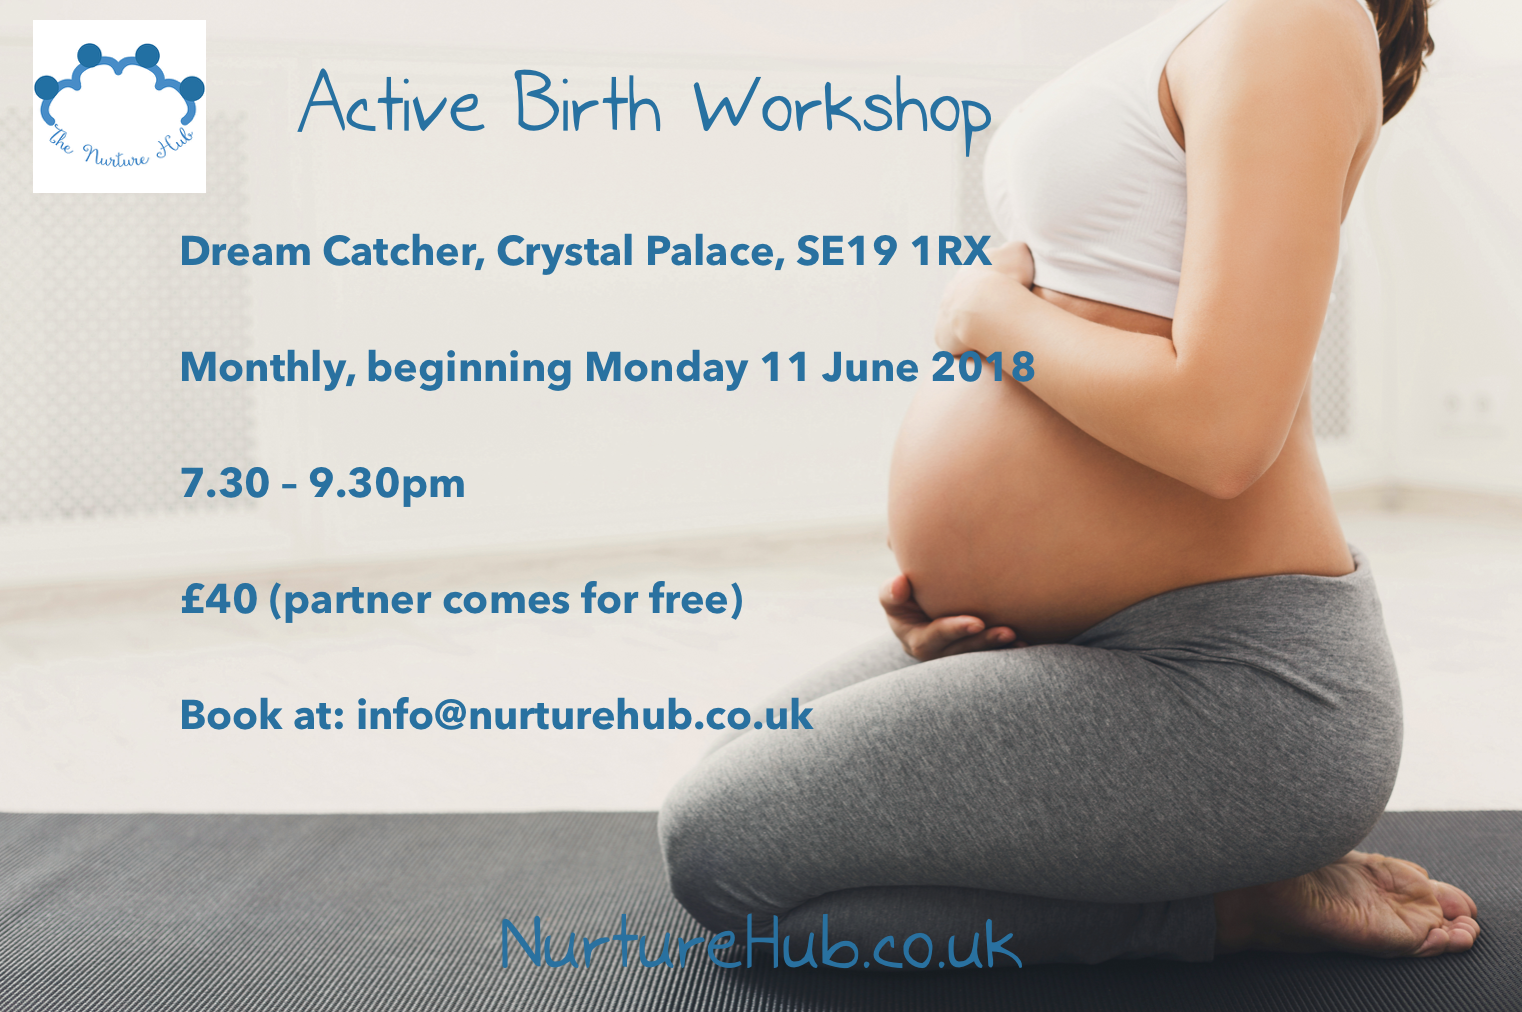 New Crystal Palace venue for our popular Active Birth Workshop